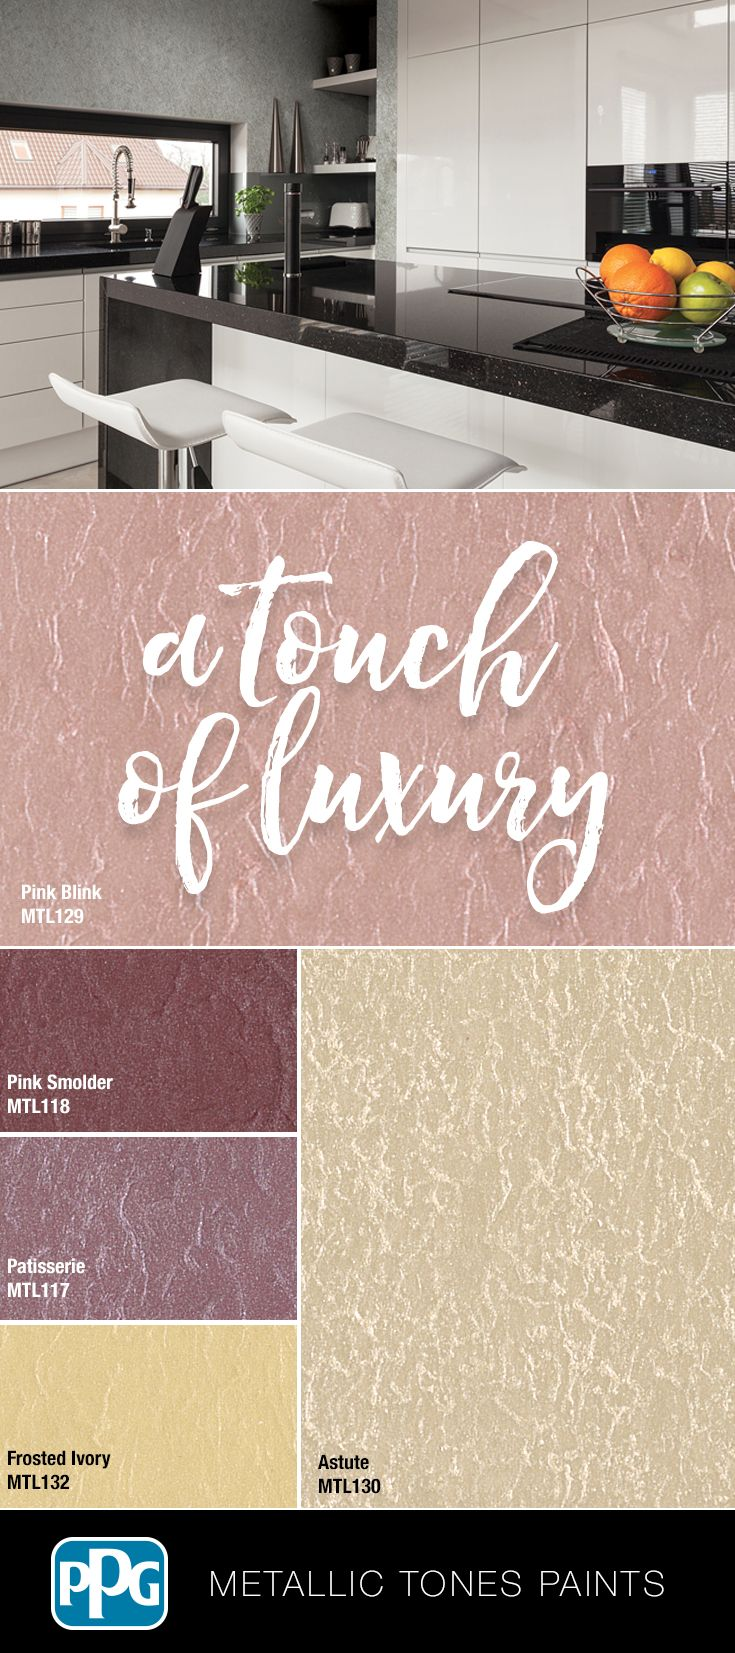 Bring a touch of luxury into your home with PPG Metallic Tones ...